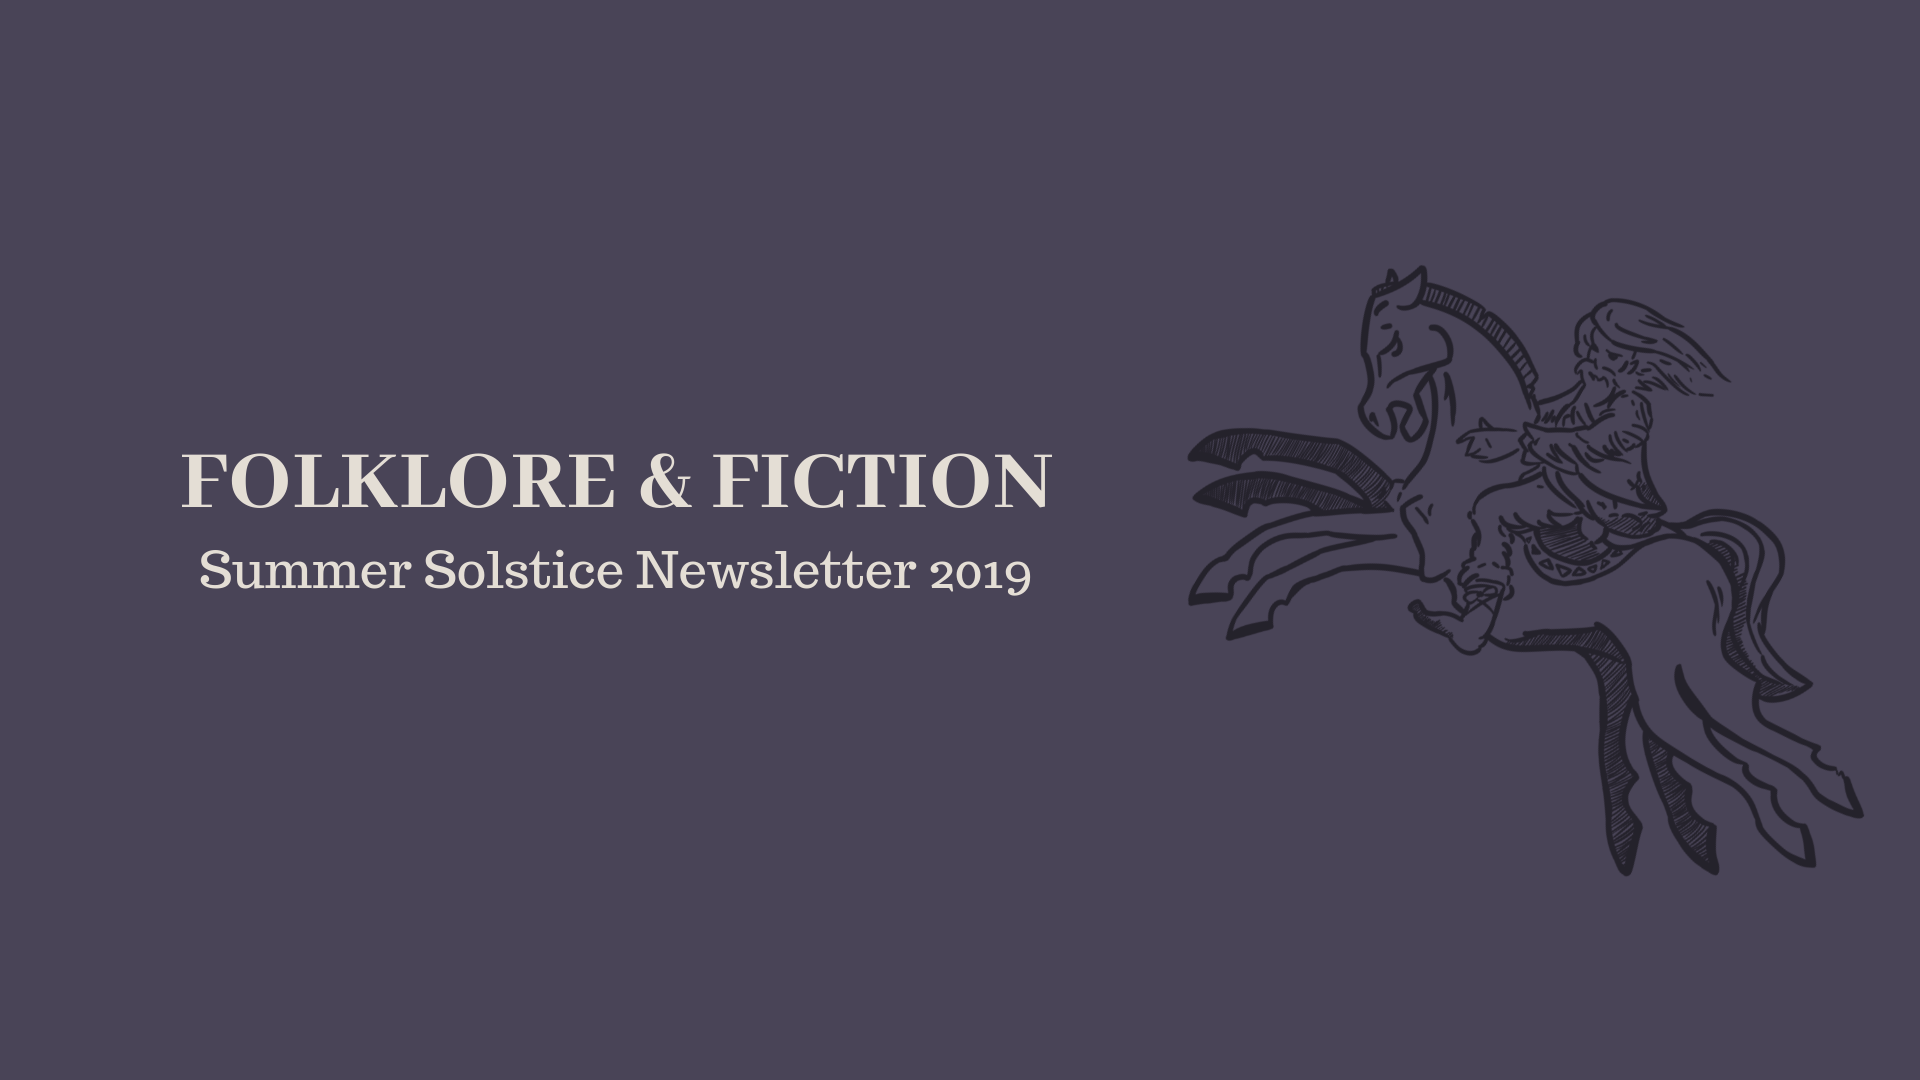 Folklore & Fiction Summer Solstice Newsletter